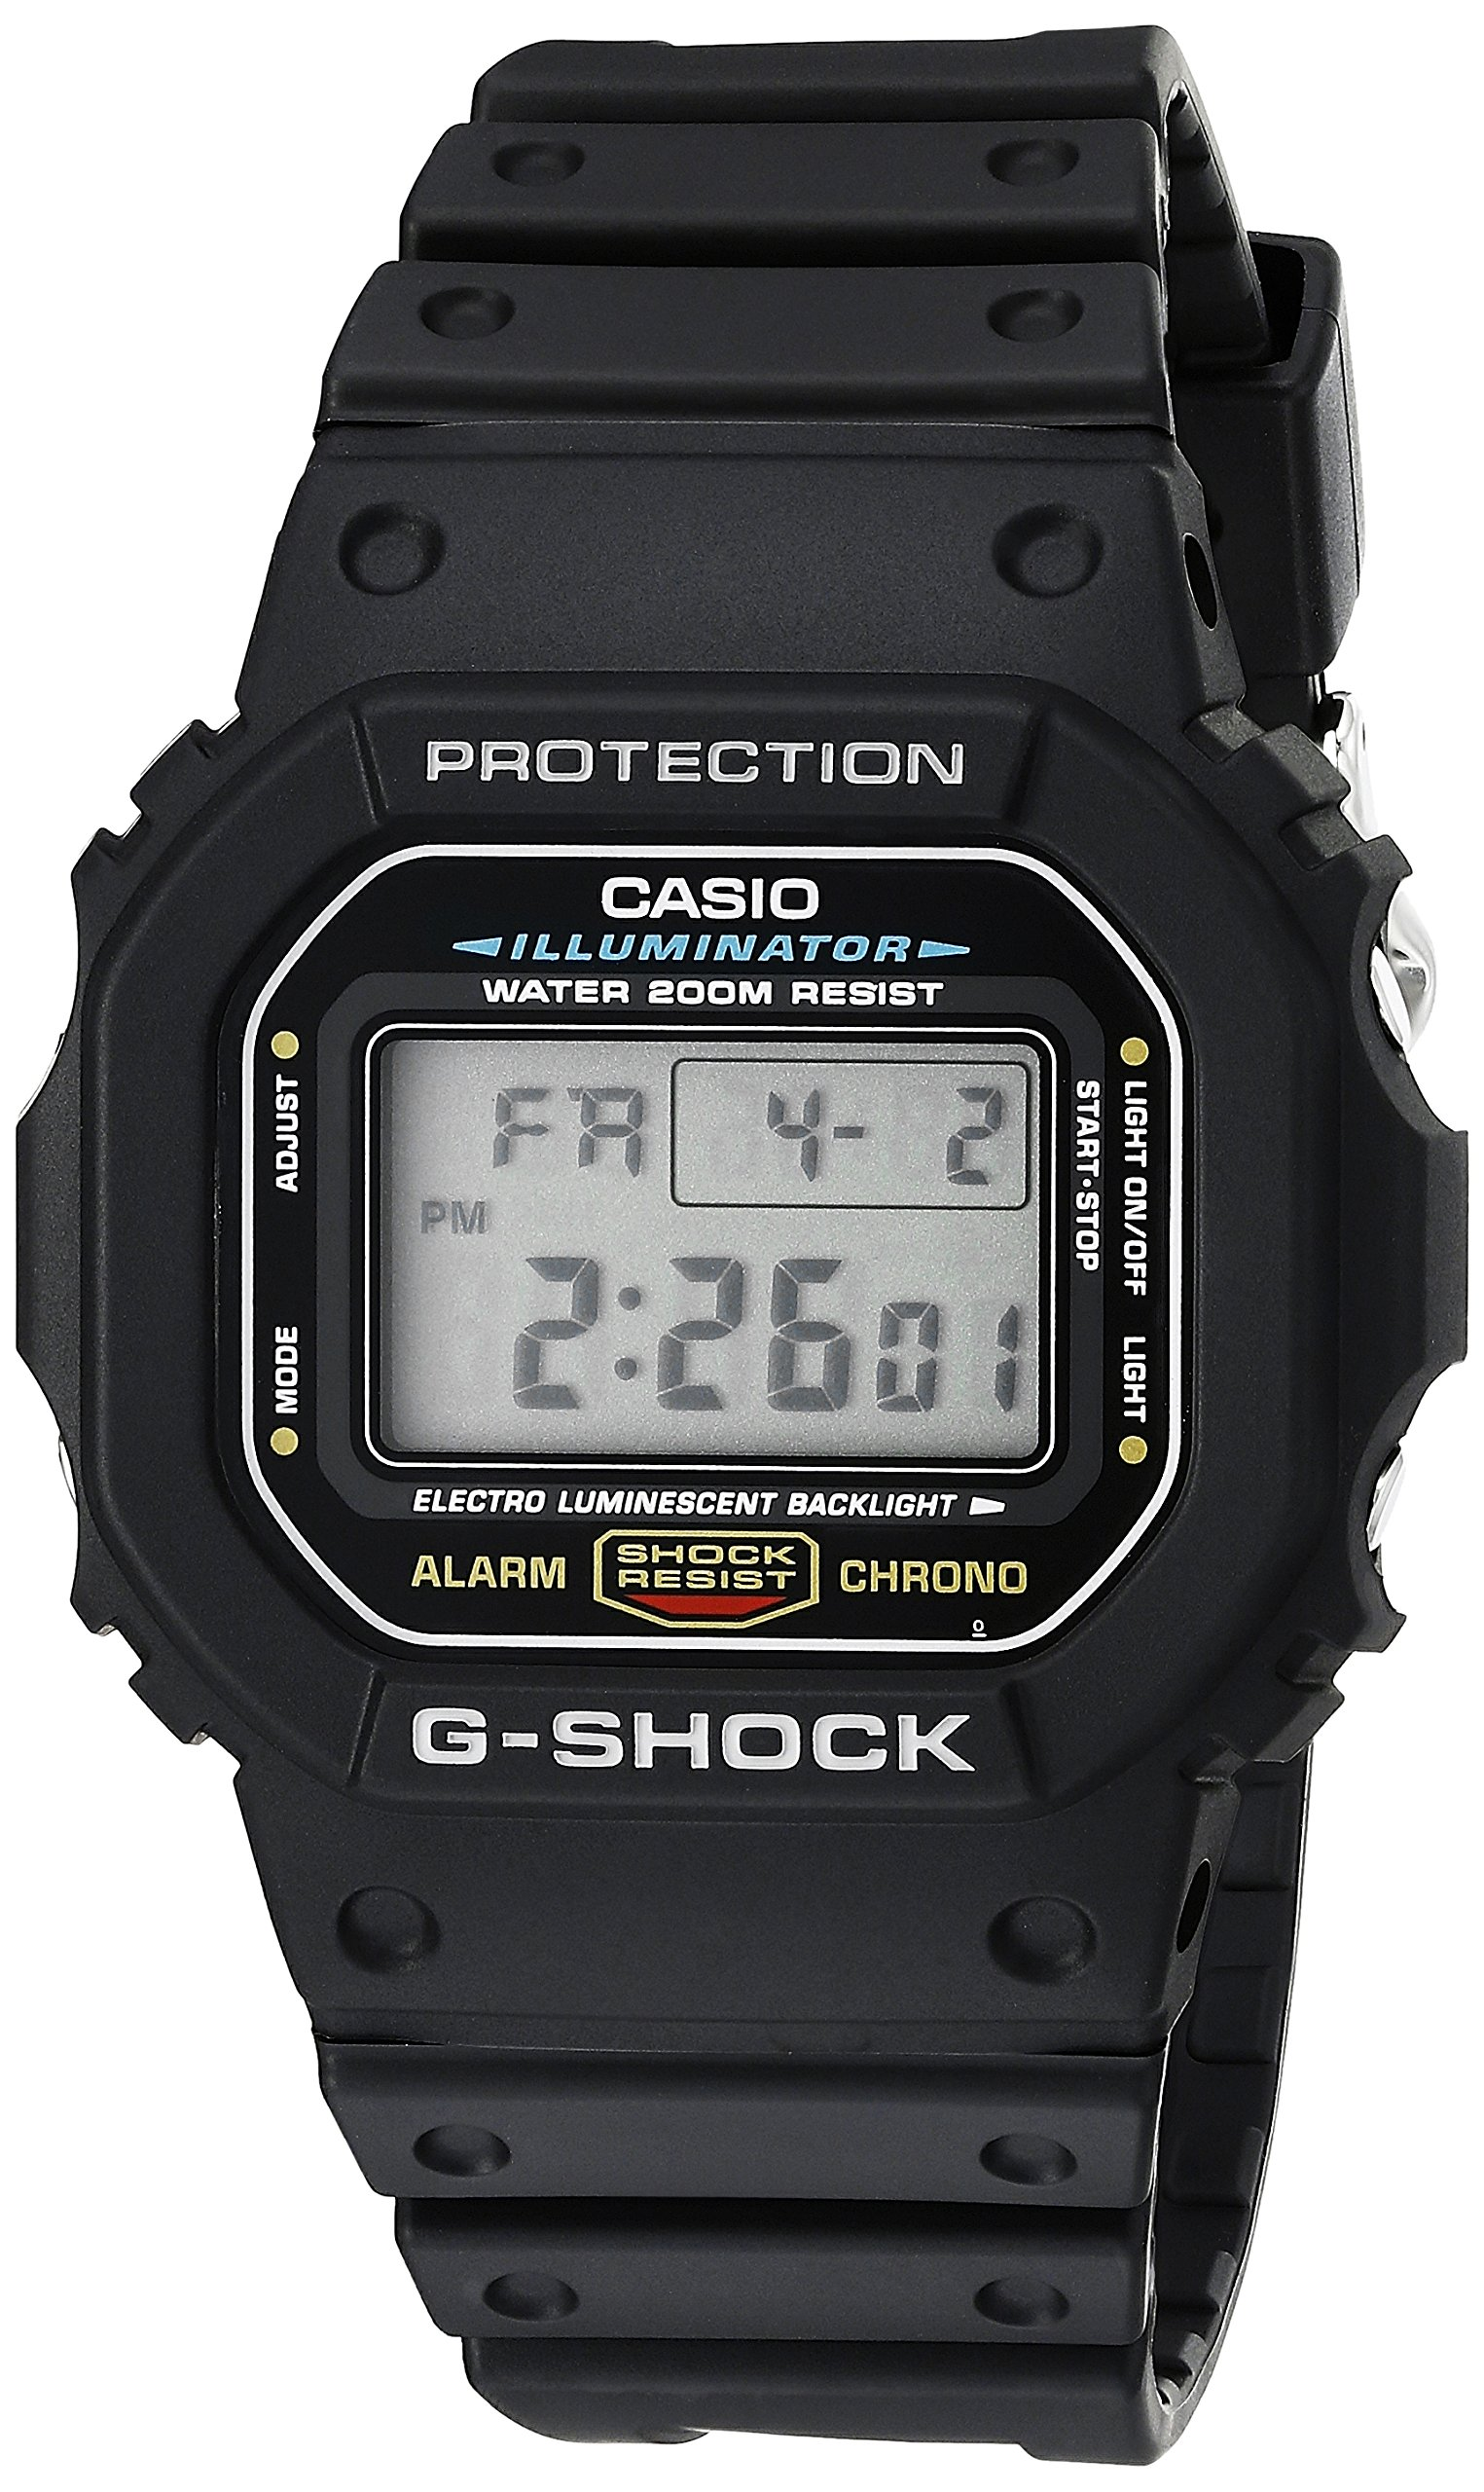 how to delete an alarm on a g shock